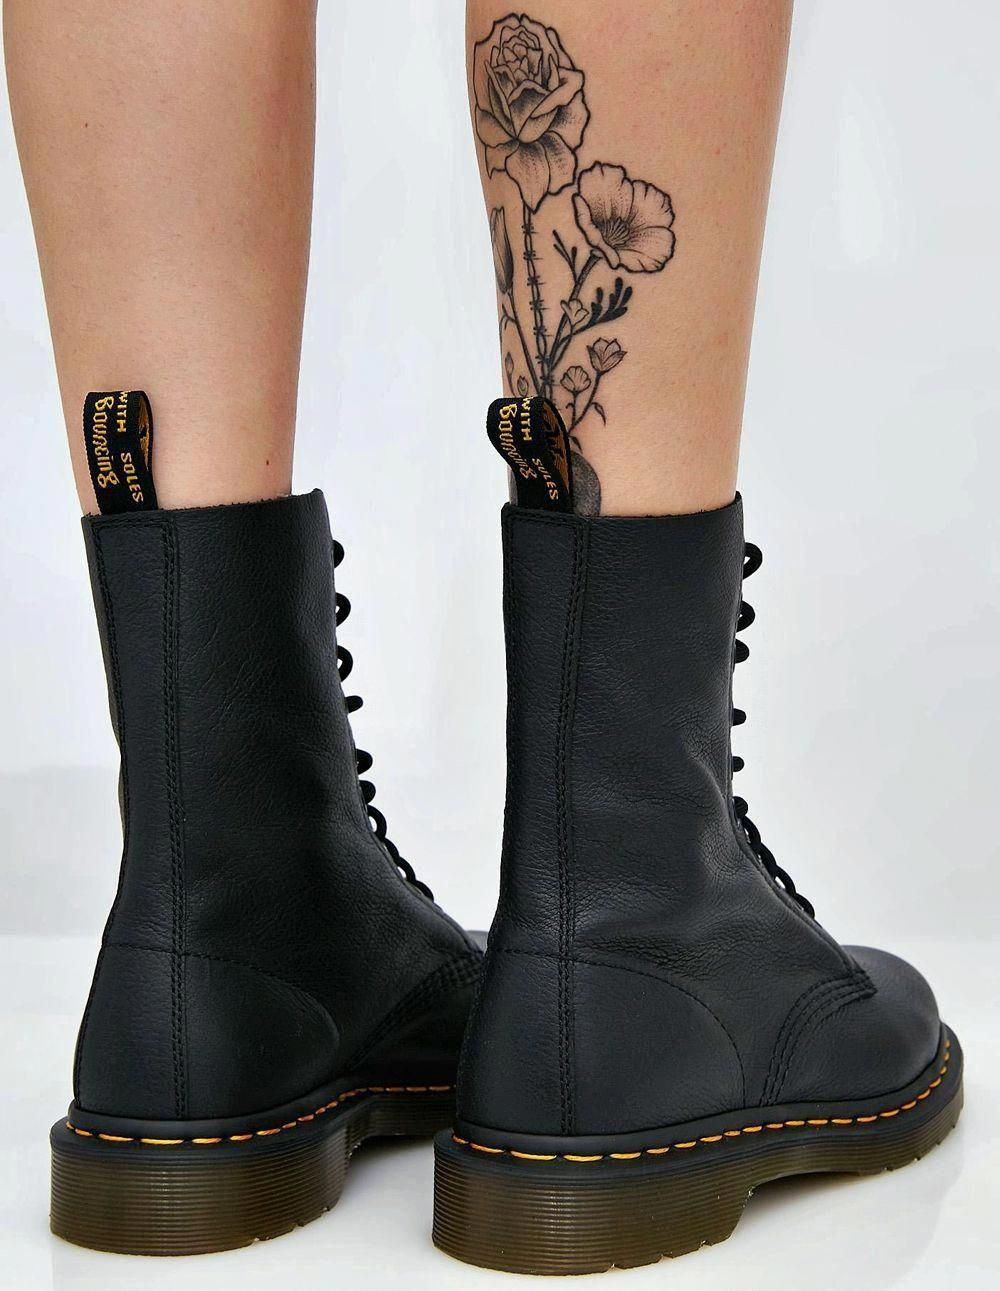 Black Vegan leather boots by Dr Martens